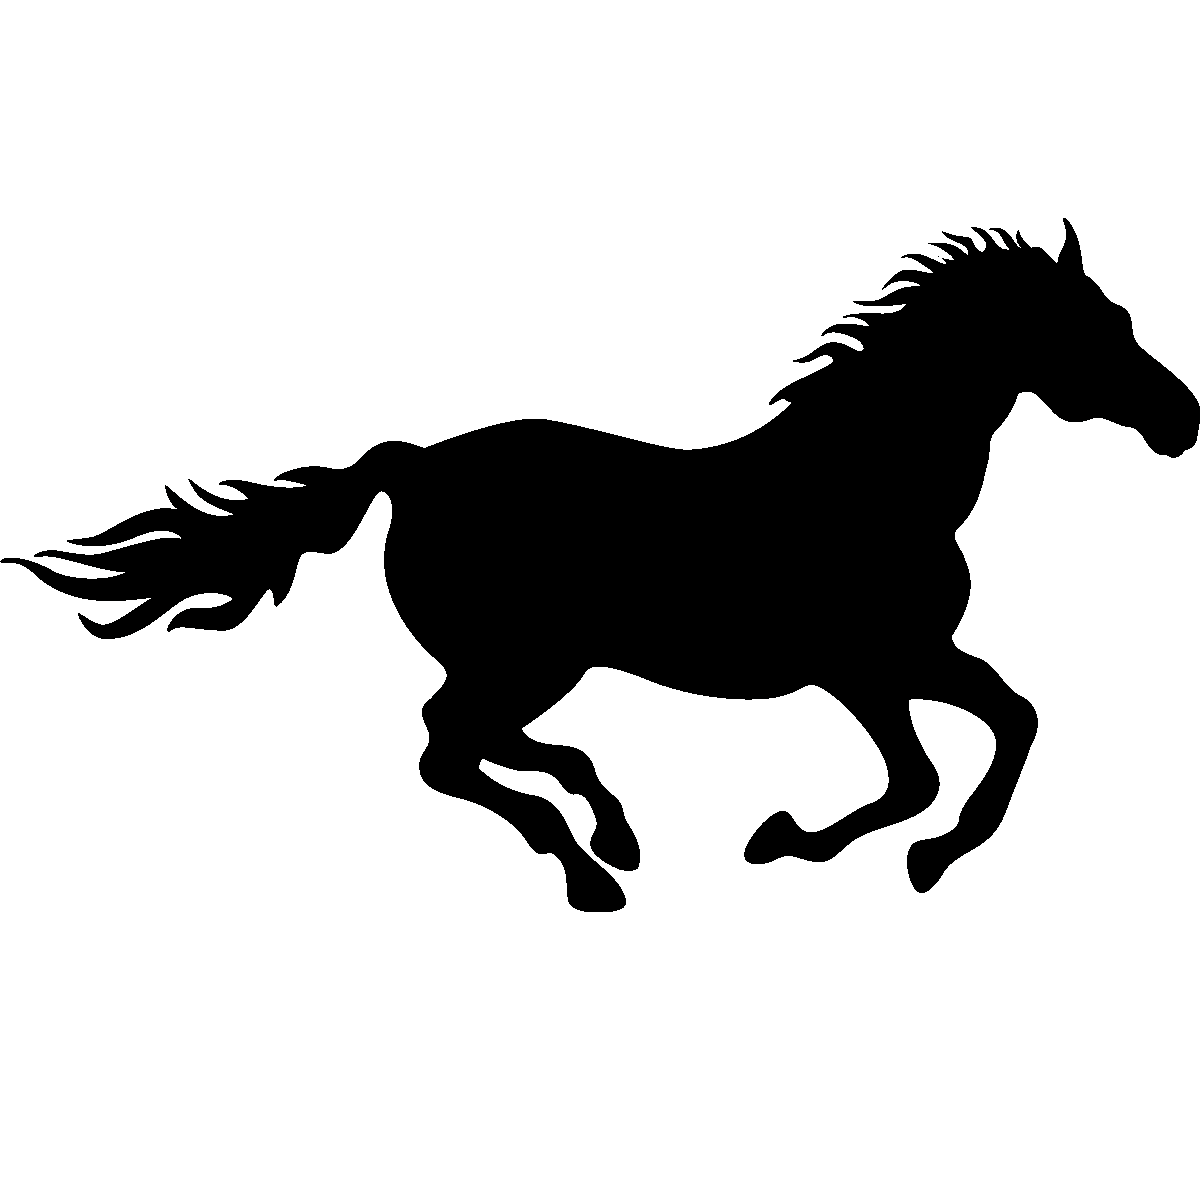 Horse Drawing Silhouette Clip art.